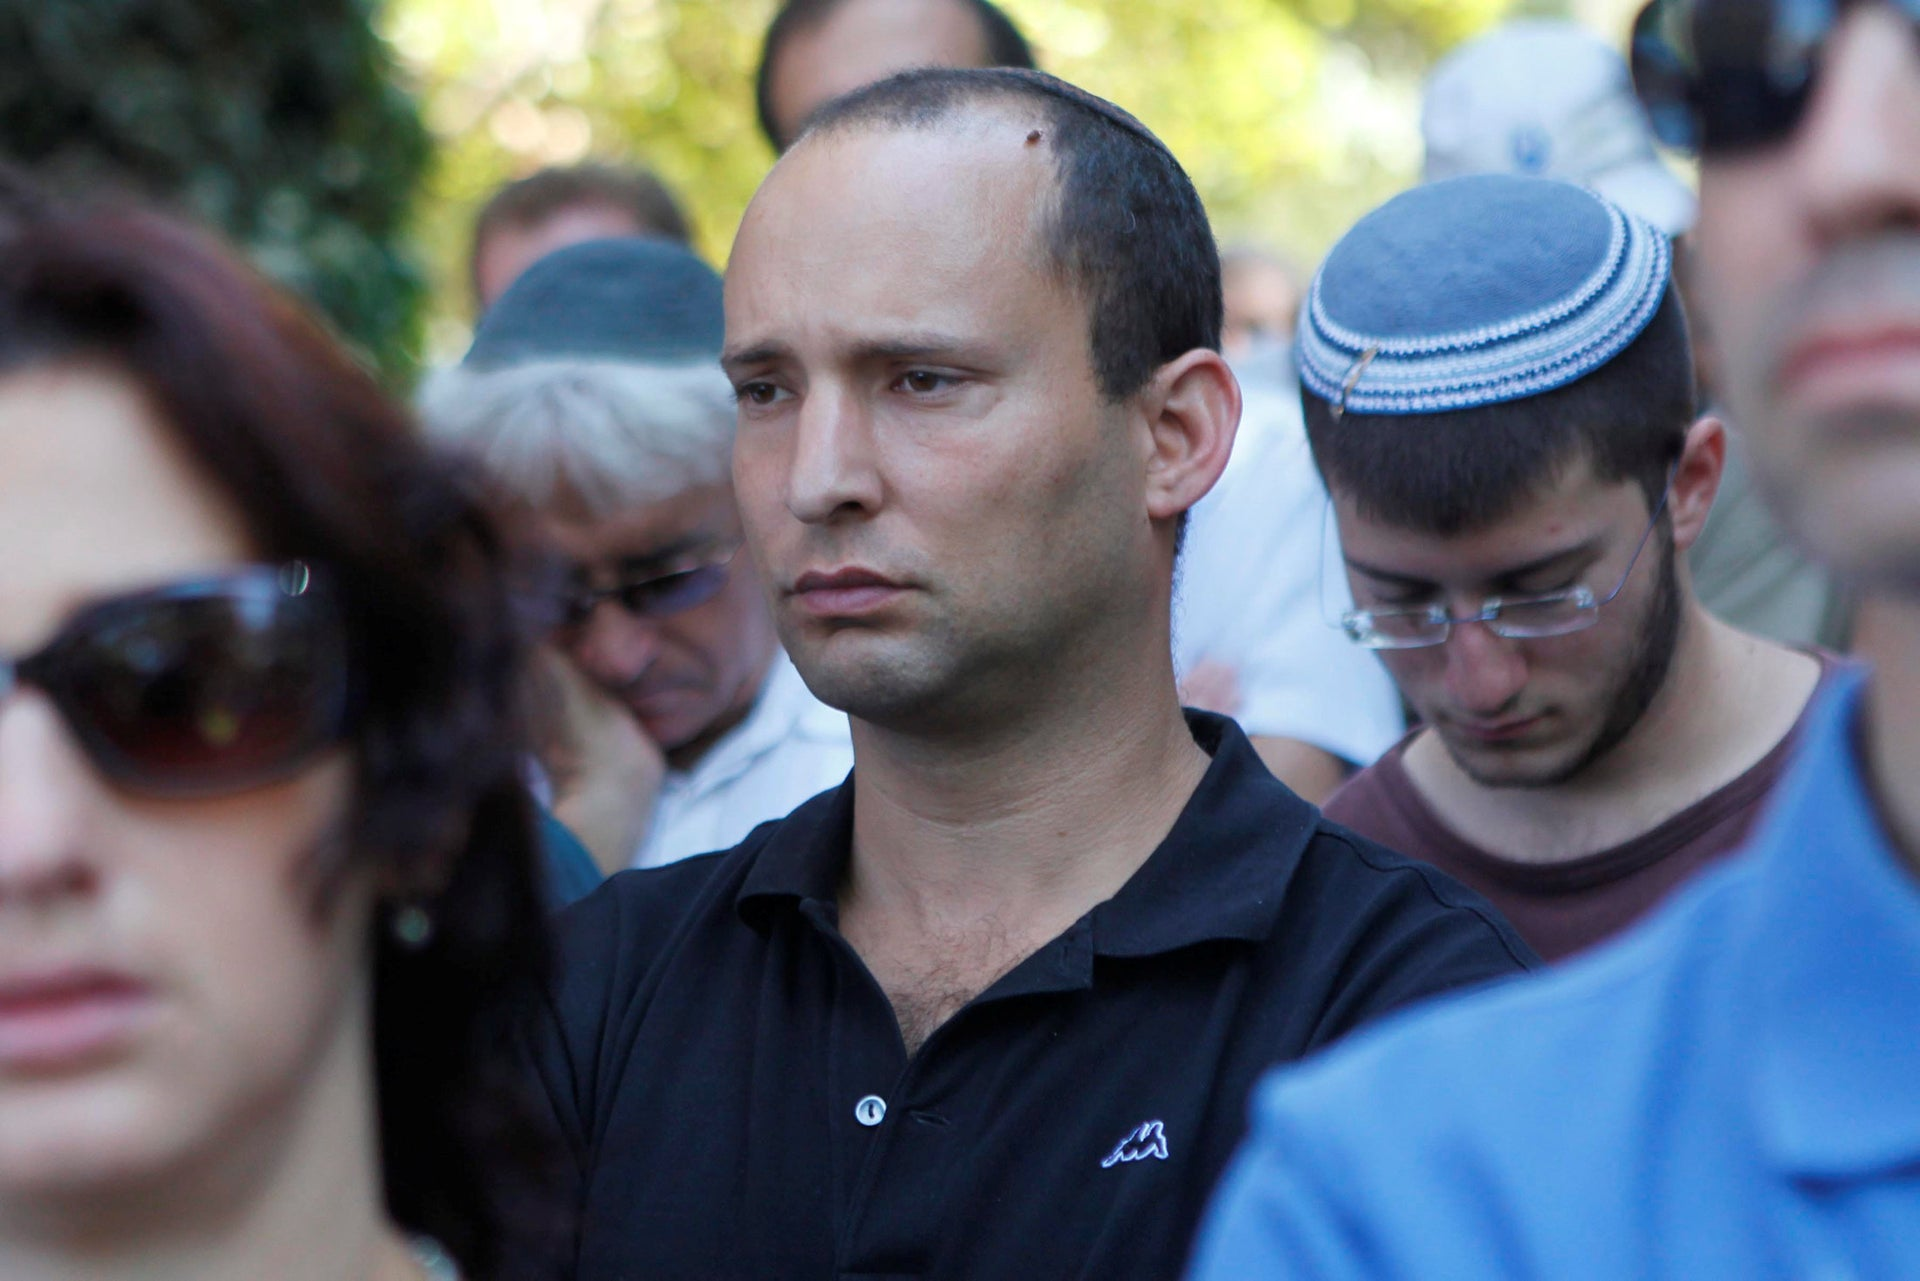 Naftali Bennett in 2011, when he was director general of the Yesha Council of settlements.